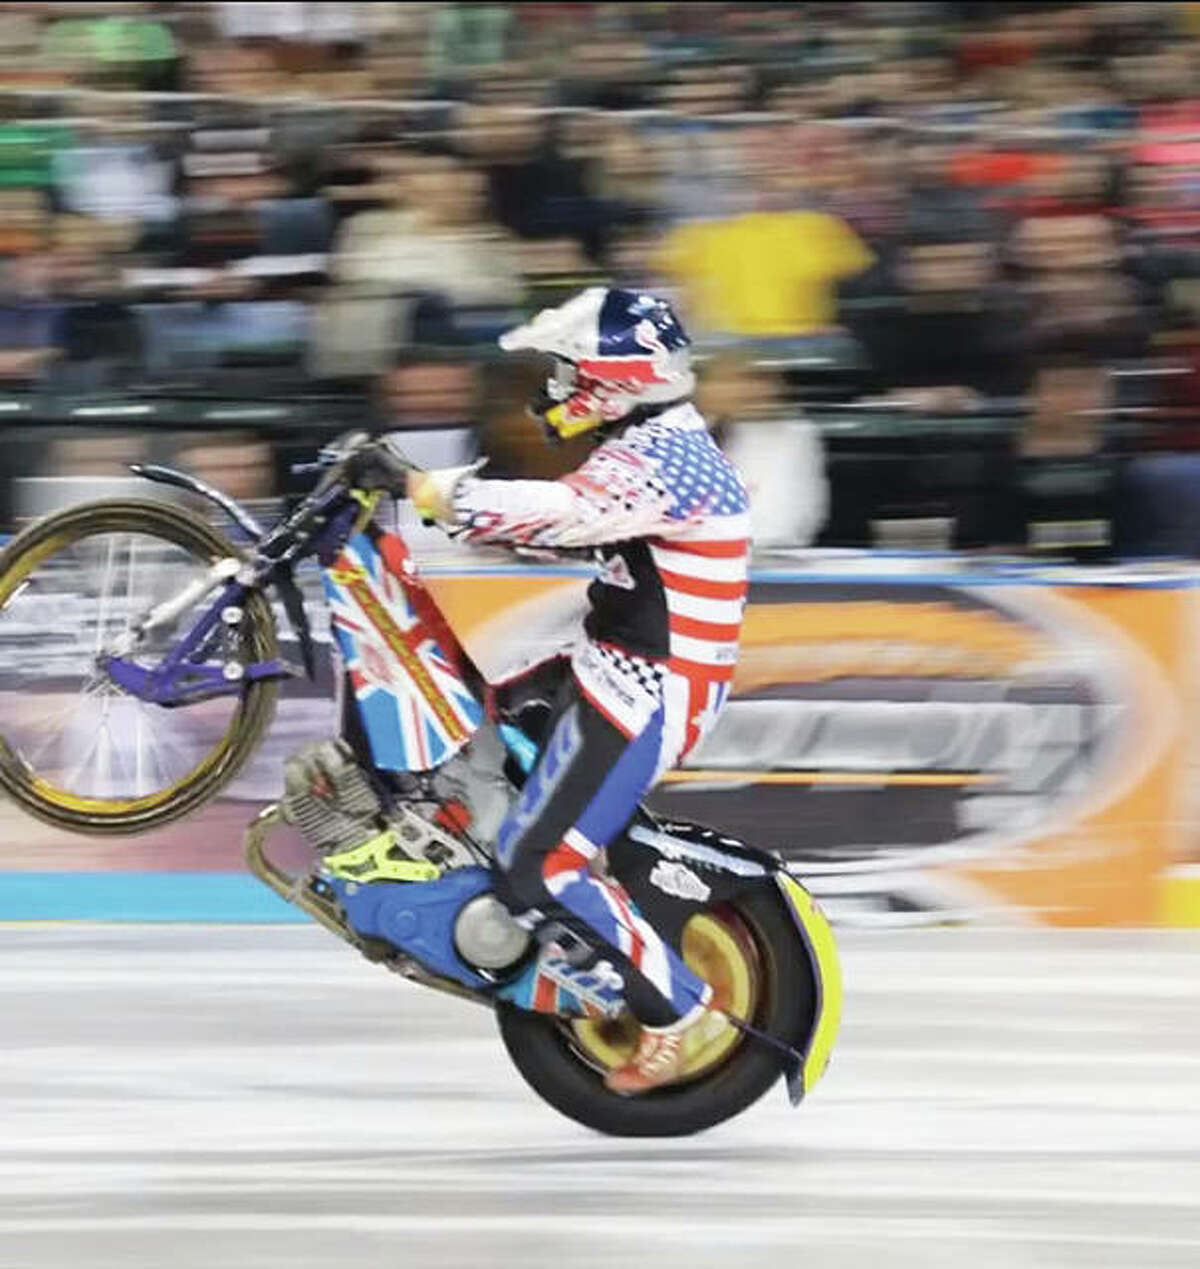 """The Xtreme International Ice Racing, or XIIR (pronounced """"X, Double I, R), is a professional motorcycle race held on ice, such as that utilized for a hockey game. Known as the world's toughest professional ice race, riders modify speedway bikes and quads to compete on an indoor ice arena."""